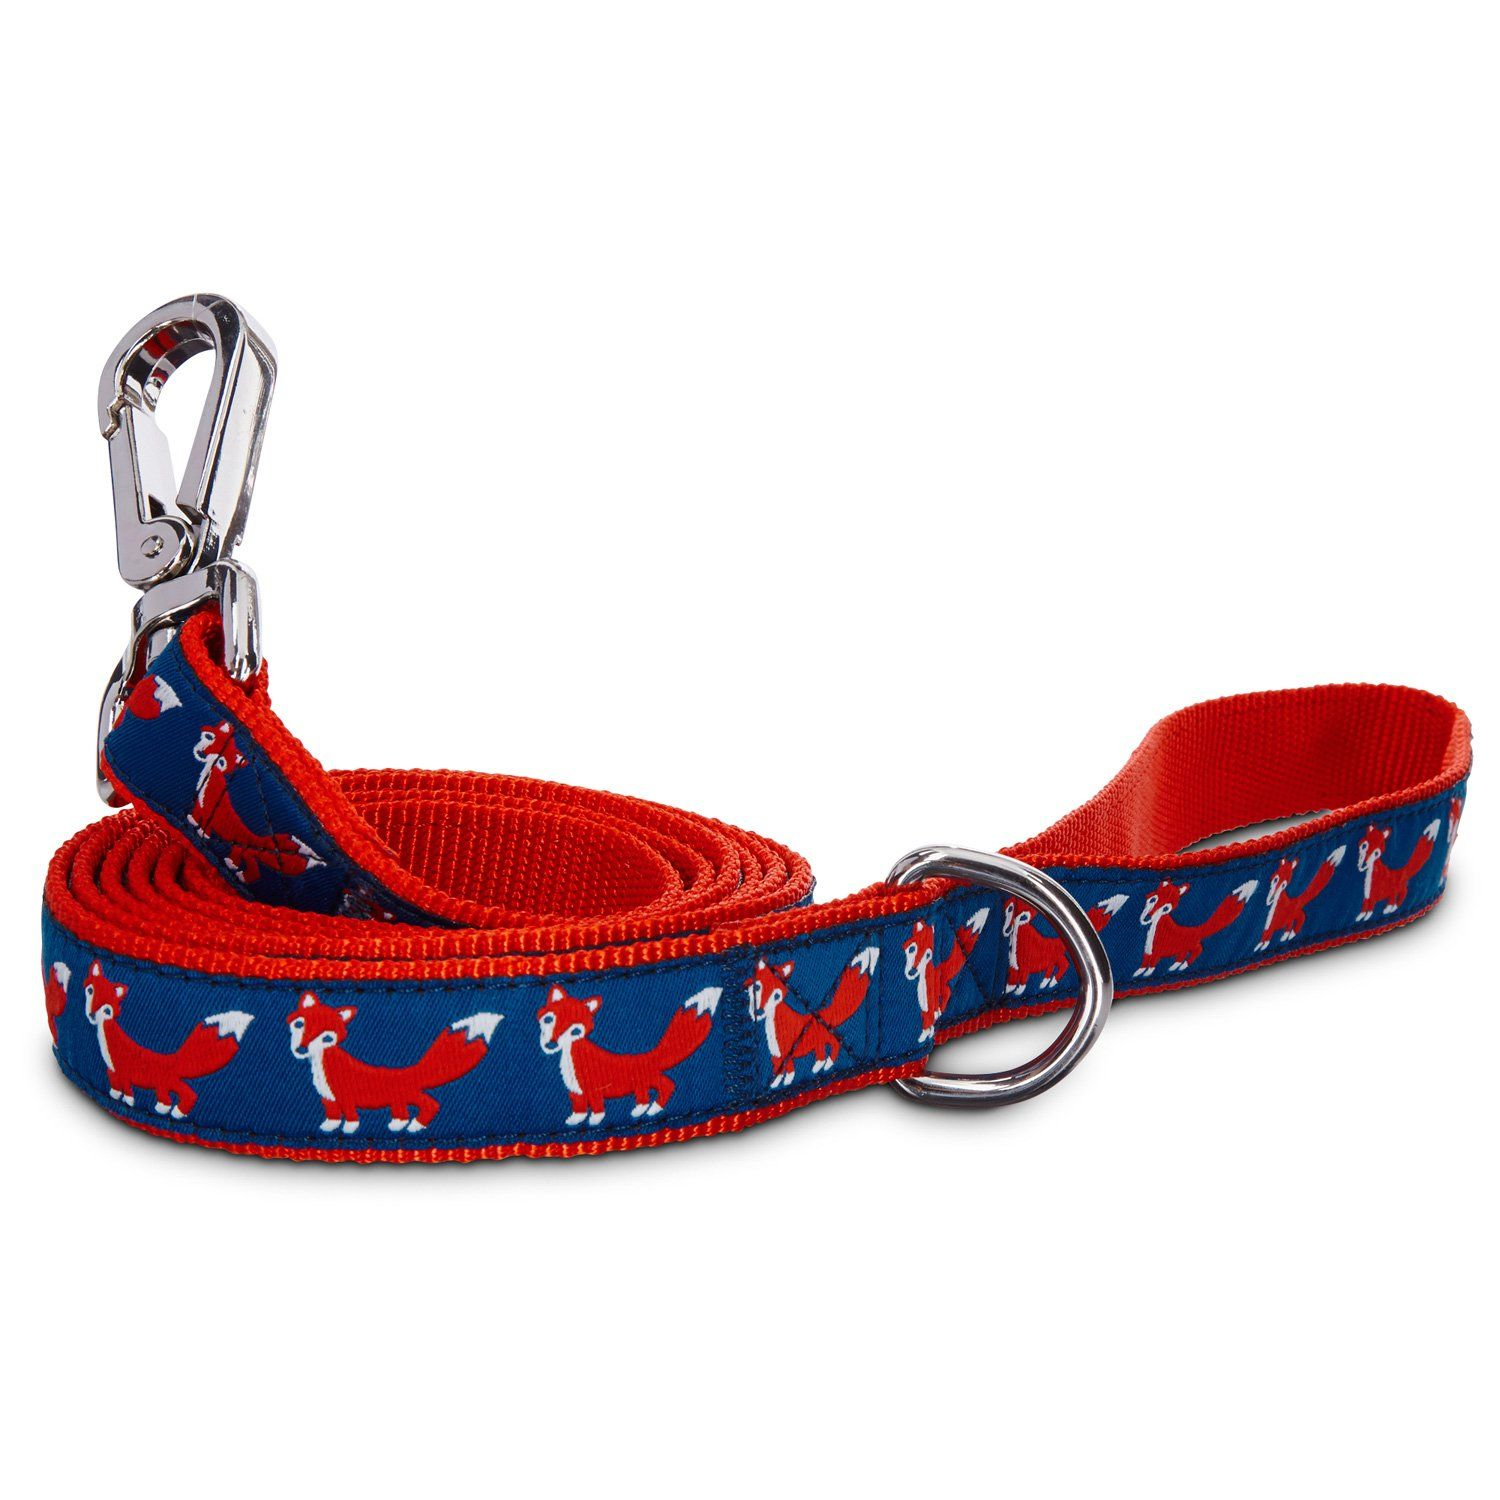 petco red fox nylon leash 6 u0027 length x 1